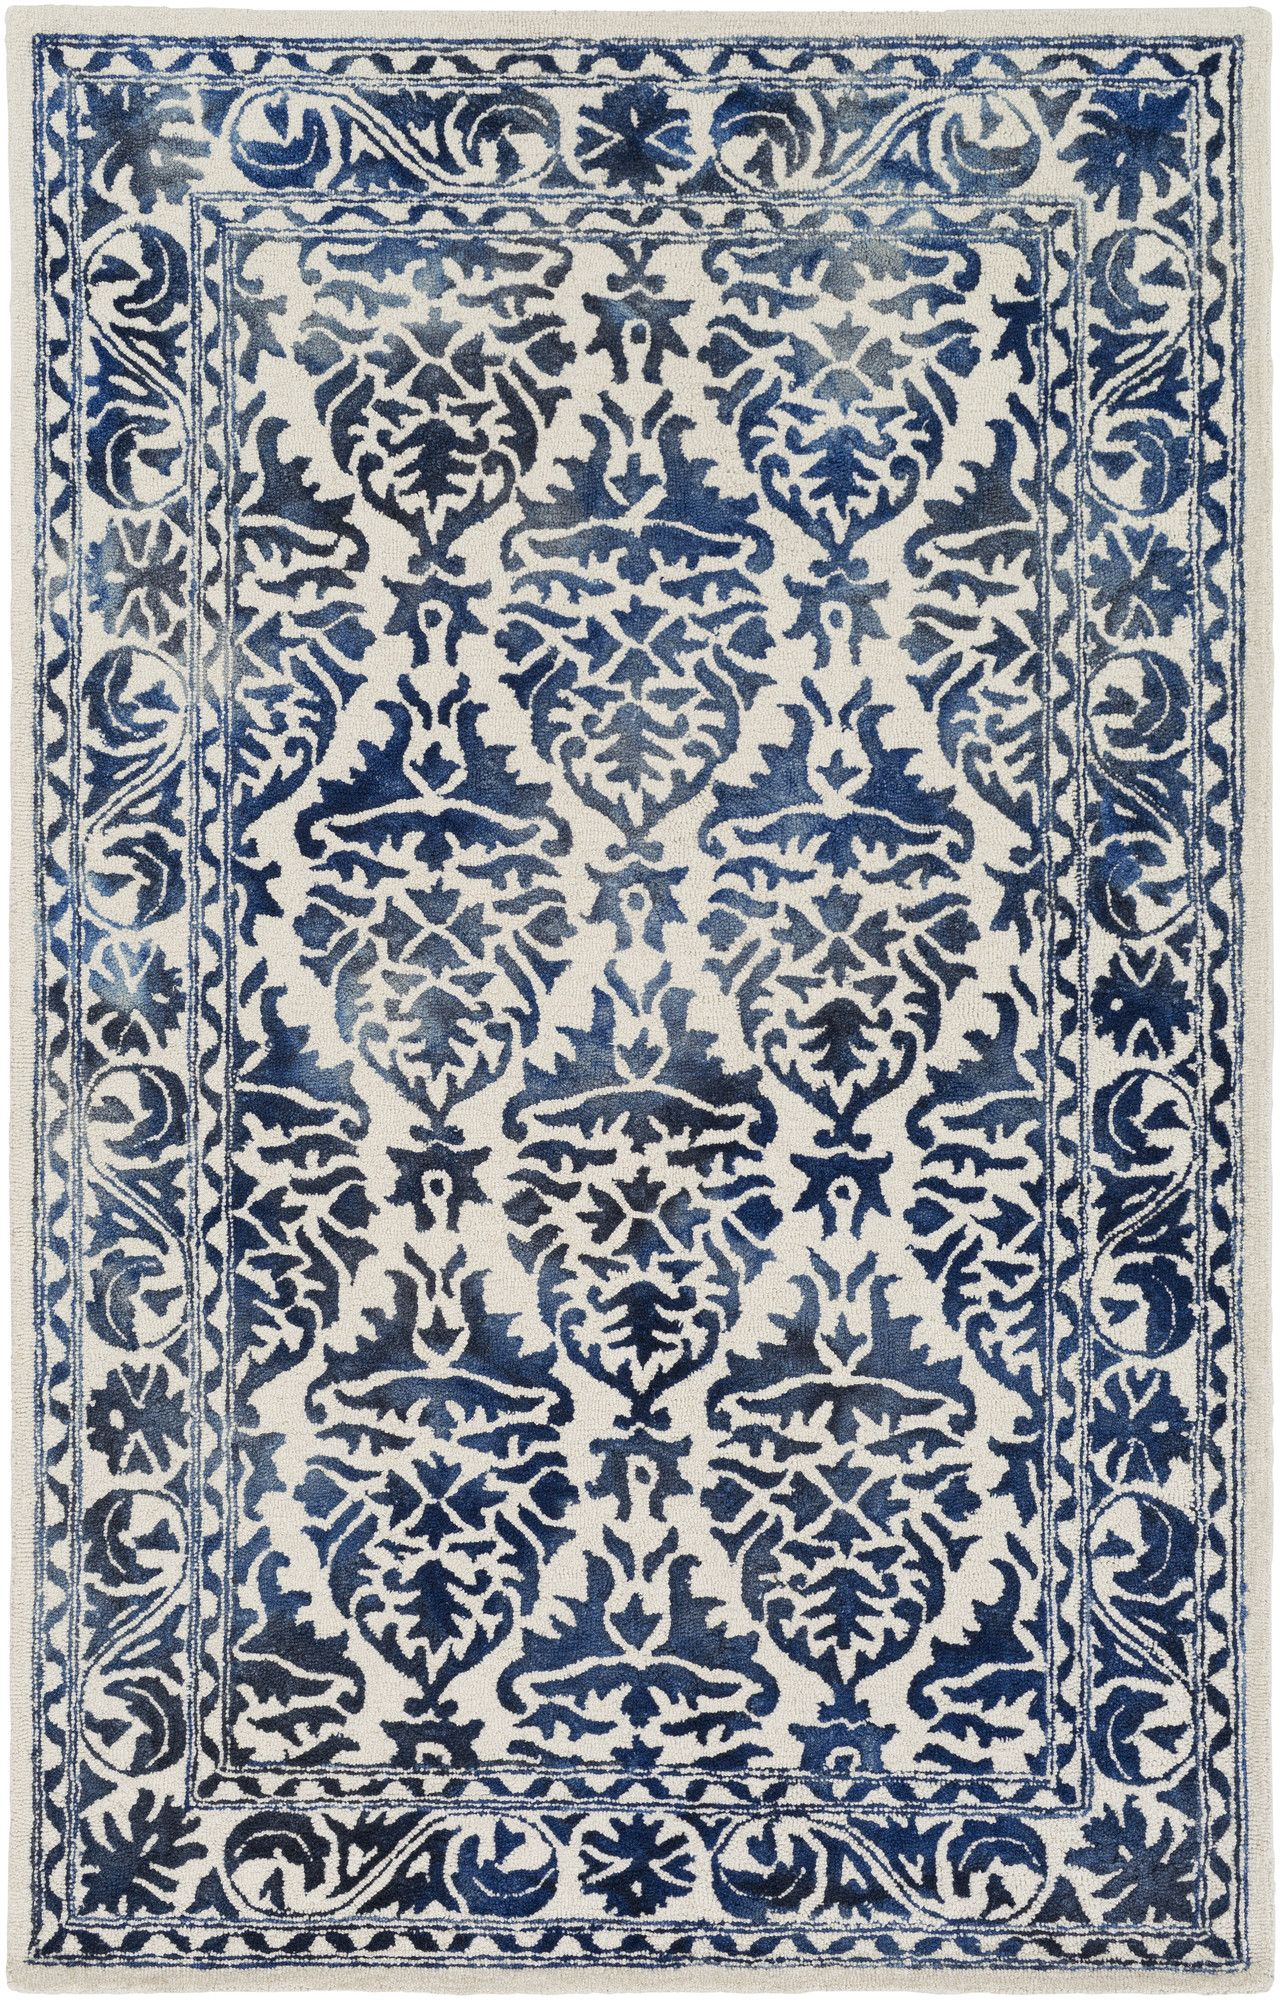 Organic Evelyn Hand Tufted Navy Off White Area Rug White Area Rug Area Rugs Transitional Area Rugs